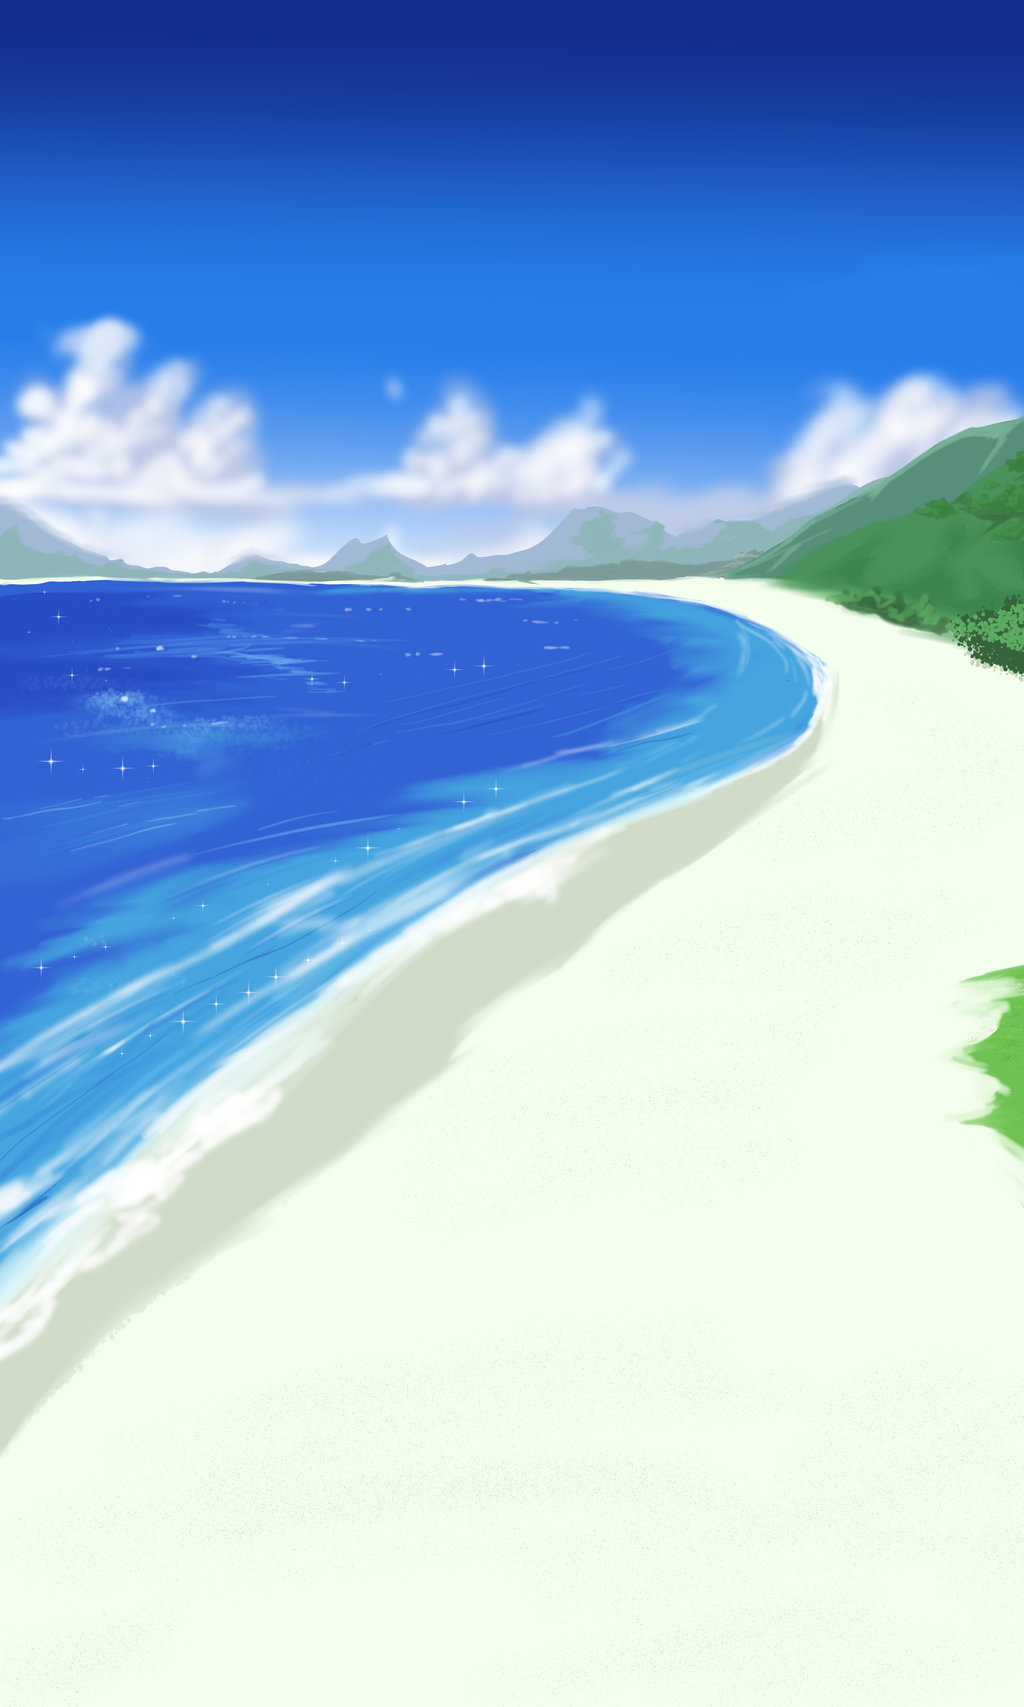 Anime Style Beach Background and Path by wbd on DeviantArt